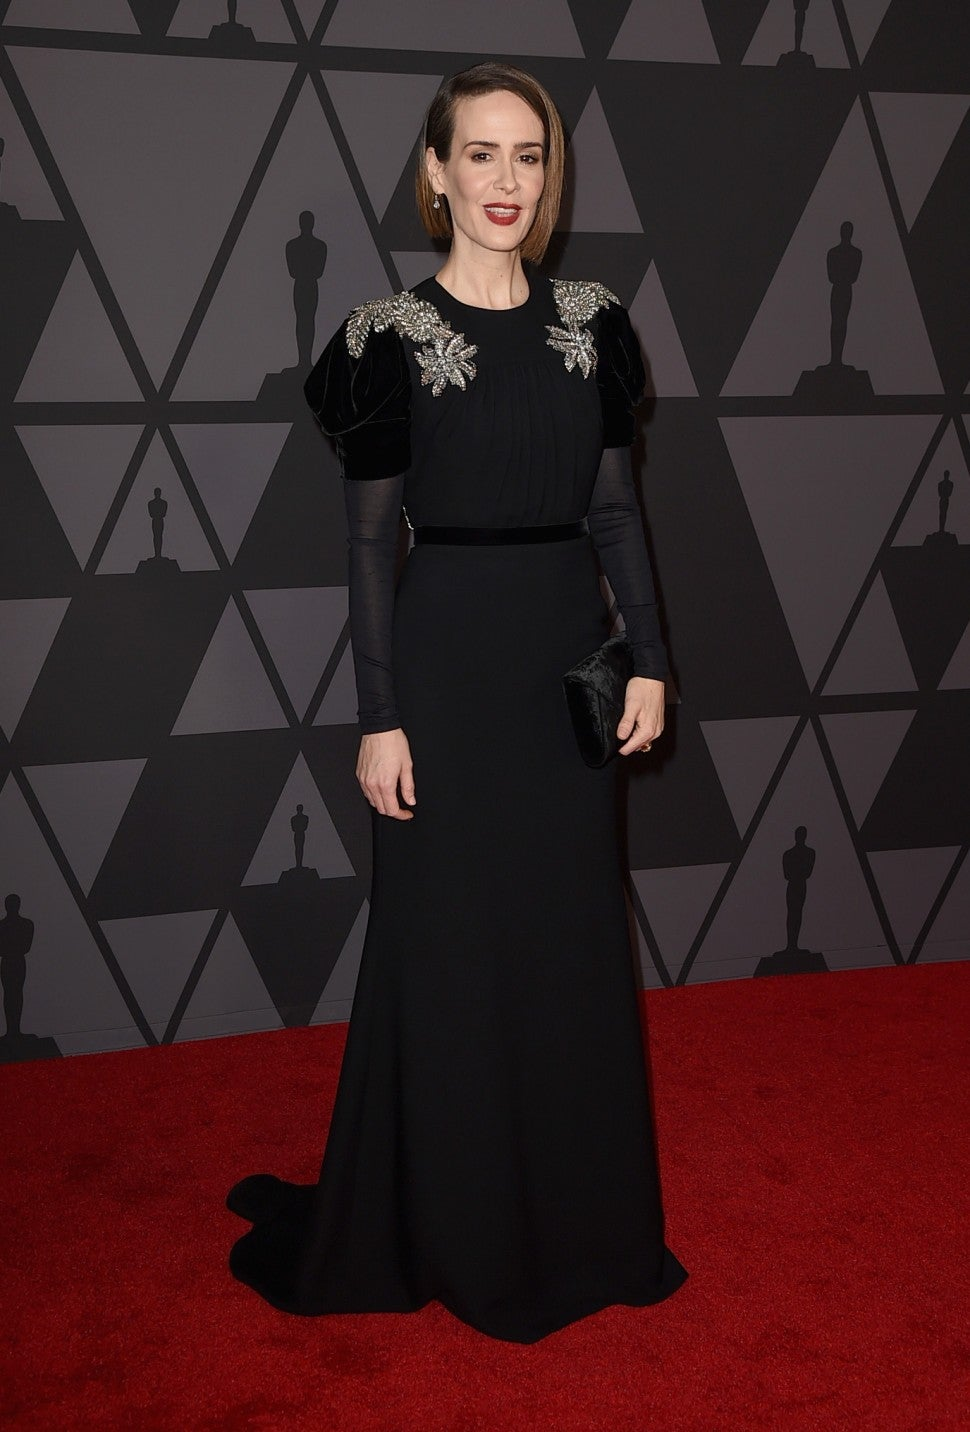 Sarah Paulson Governors Awards